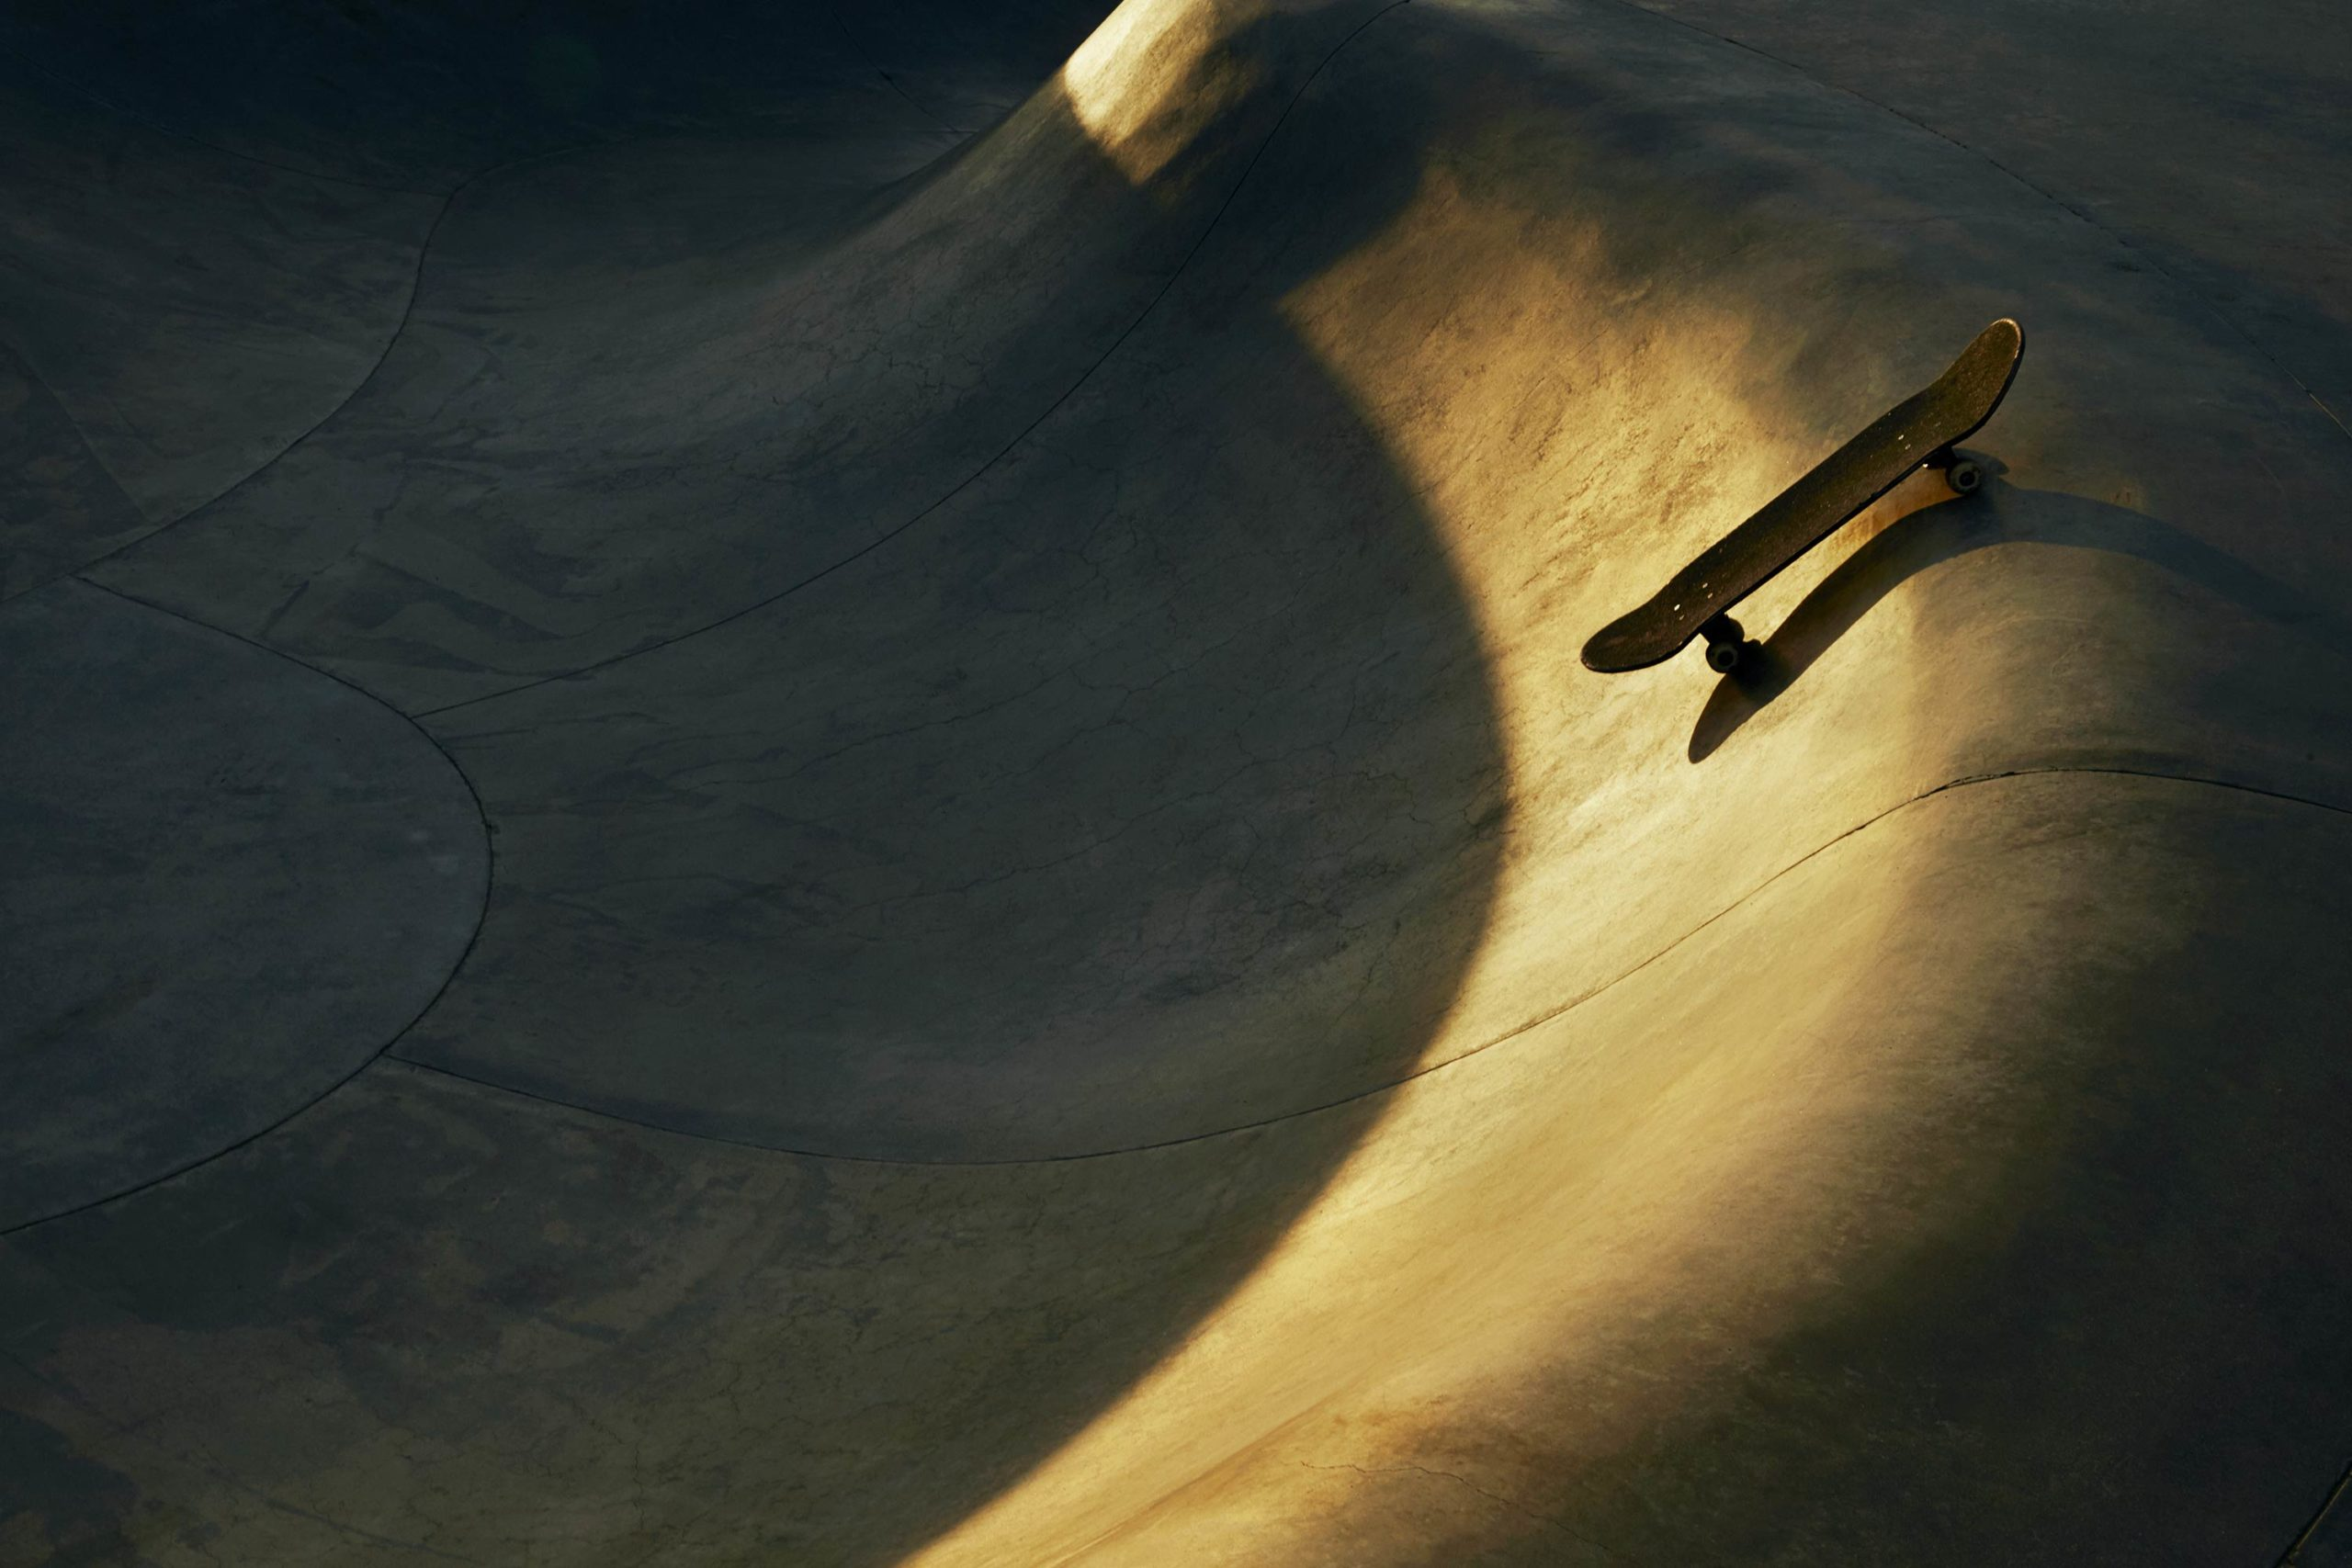 Gravity Fed - Skate Park, Venice Beach Collection - Fine Art Photography by Toby Dixon